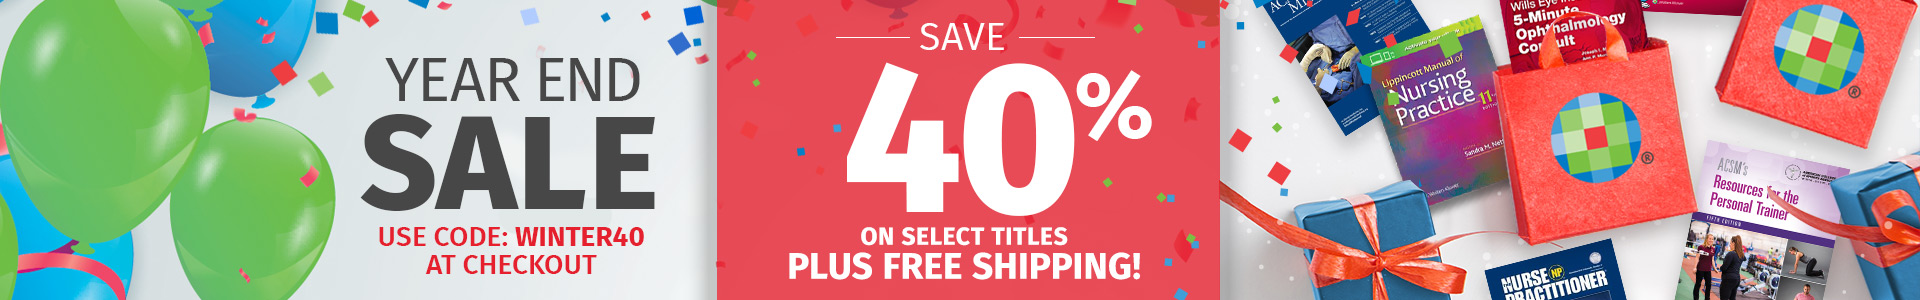 Year End Sale - Wolters Kluwer